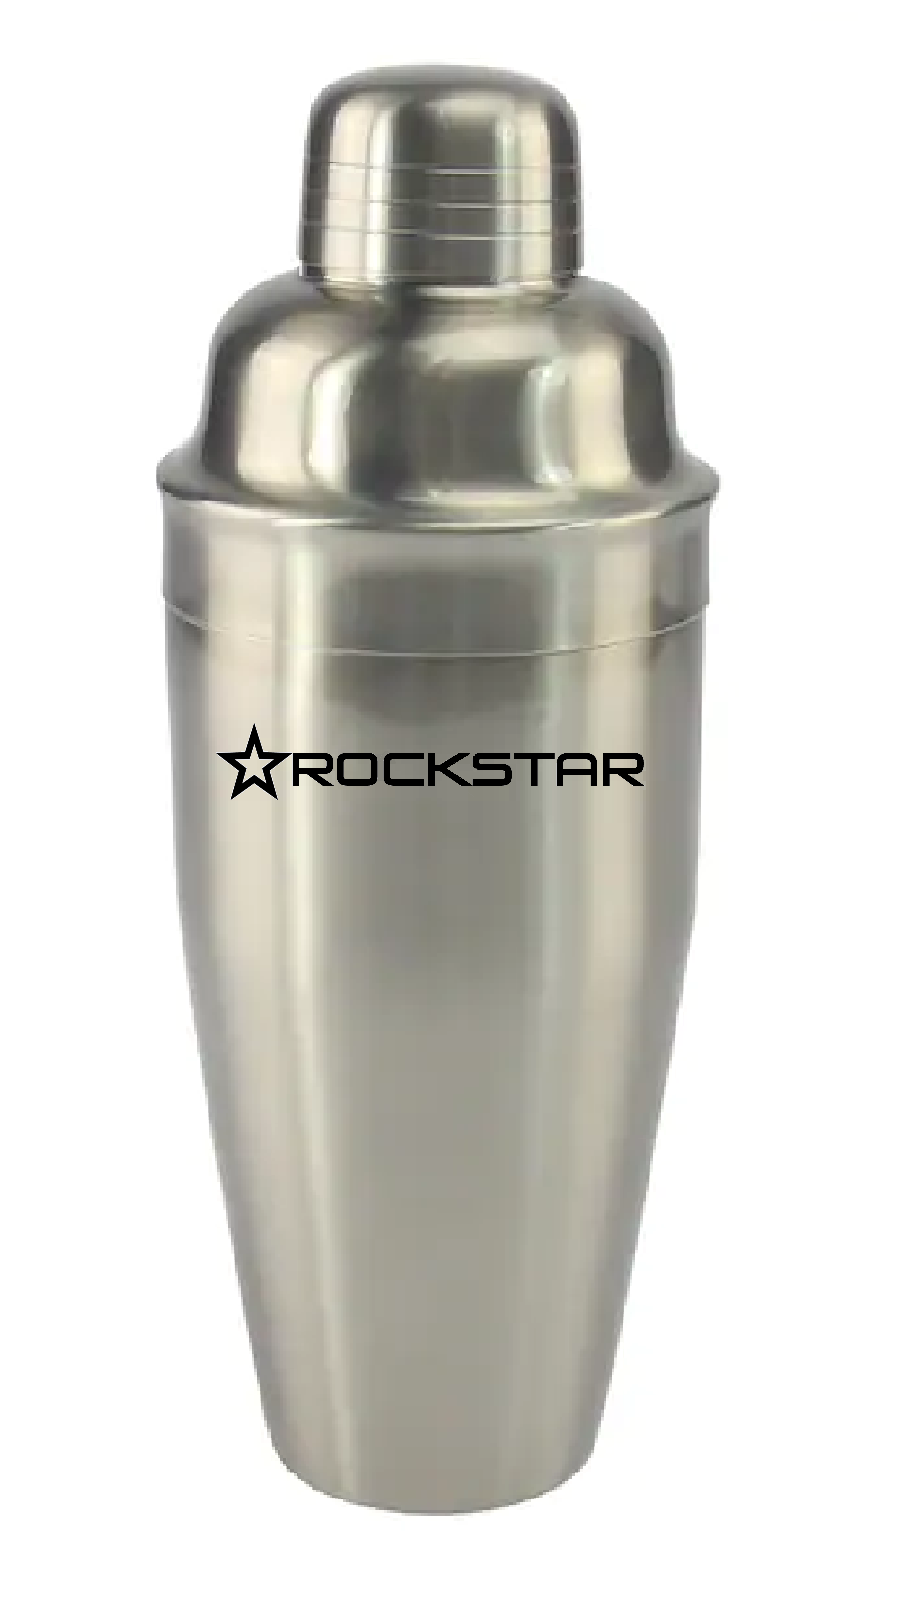 24 oz Rockstar Cocktail Shaker